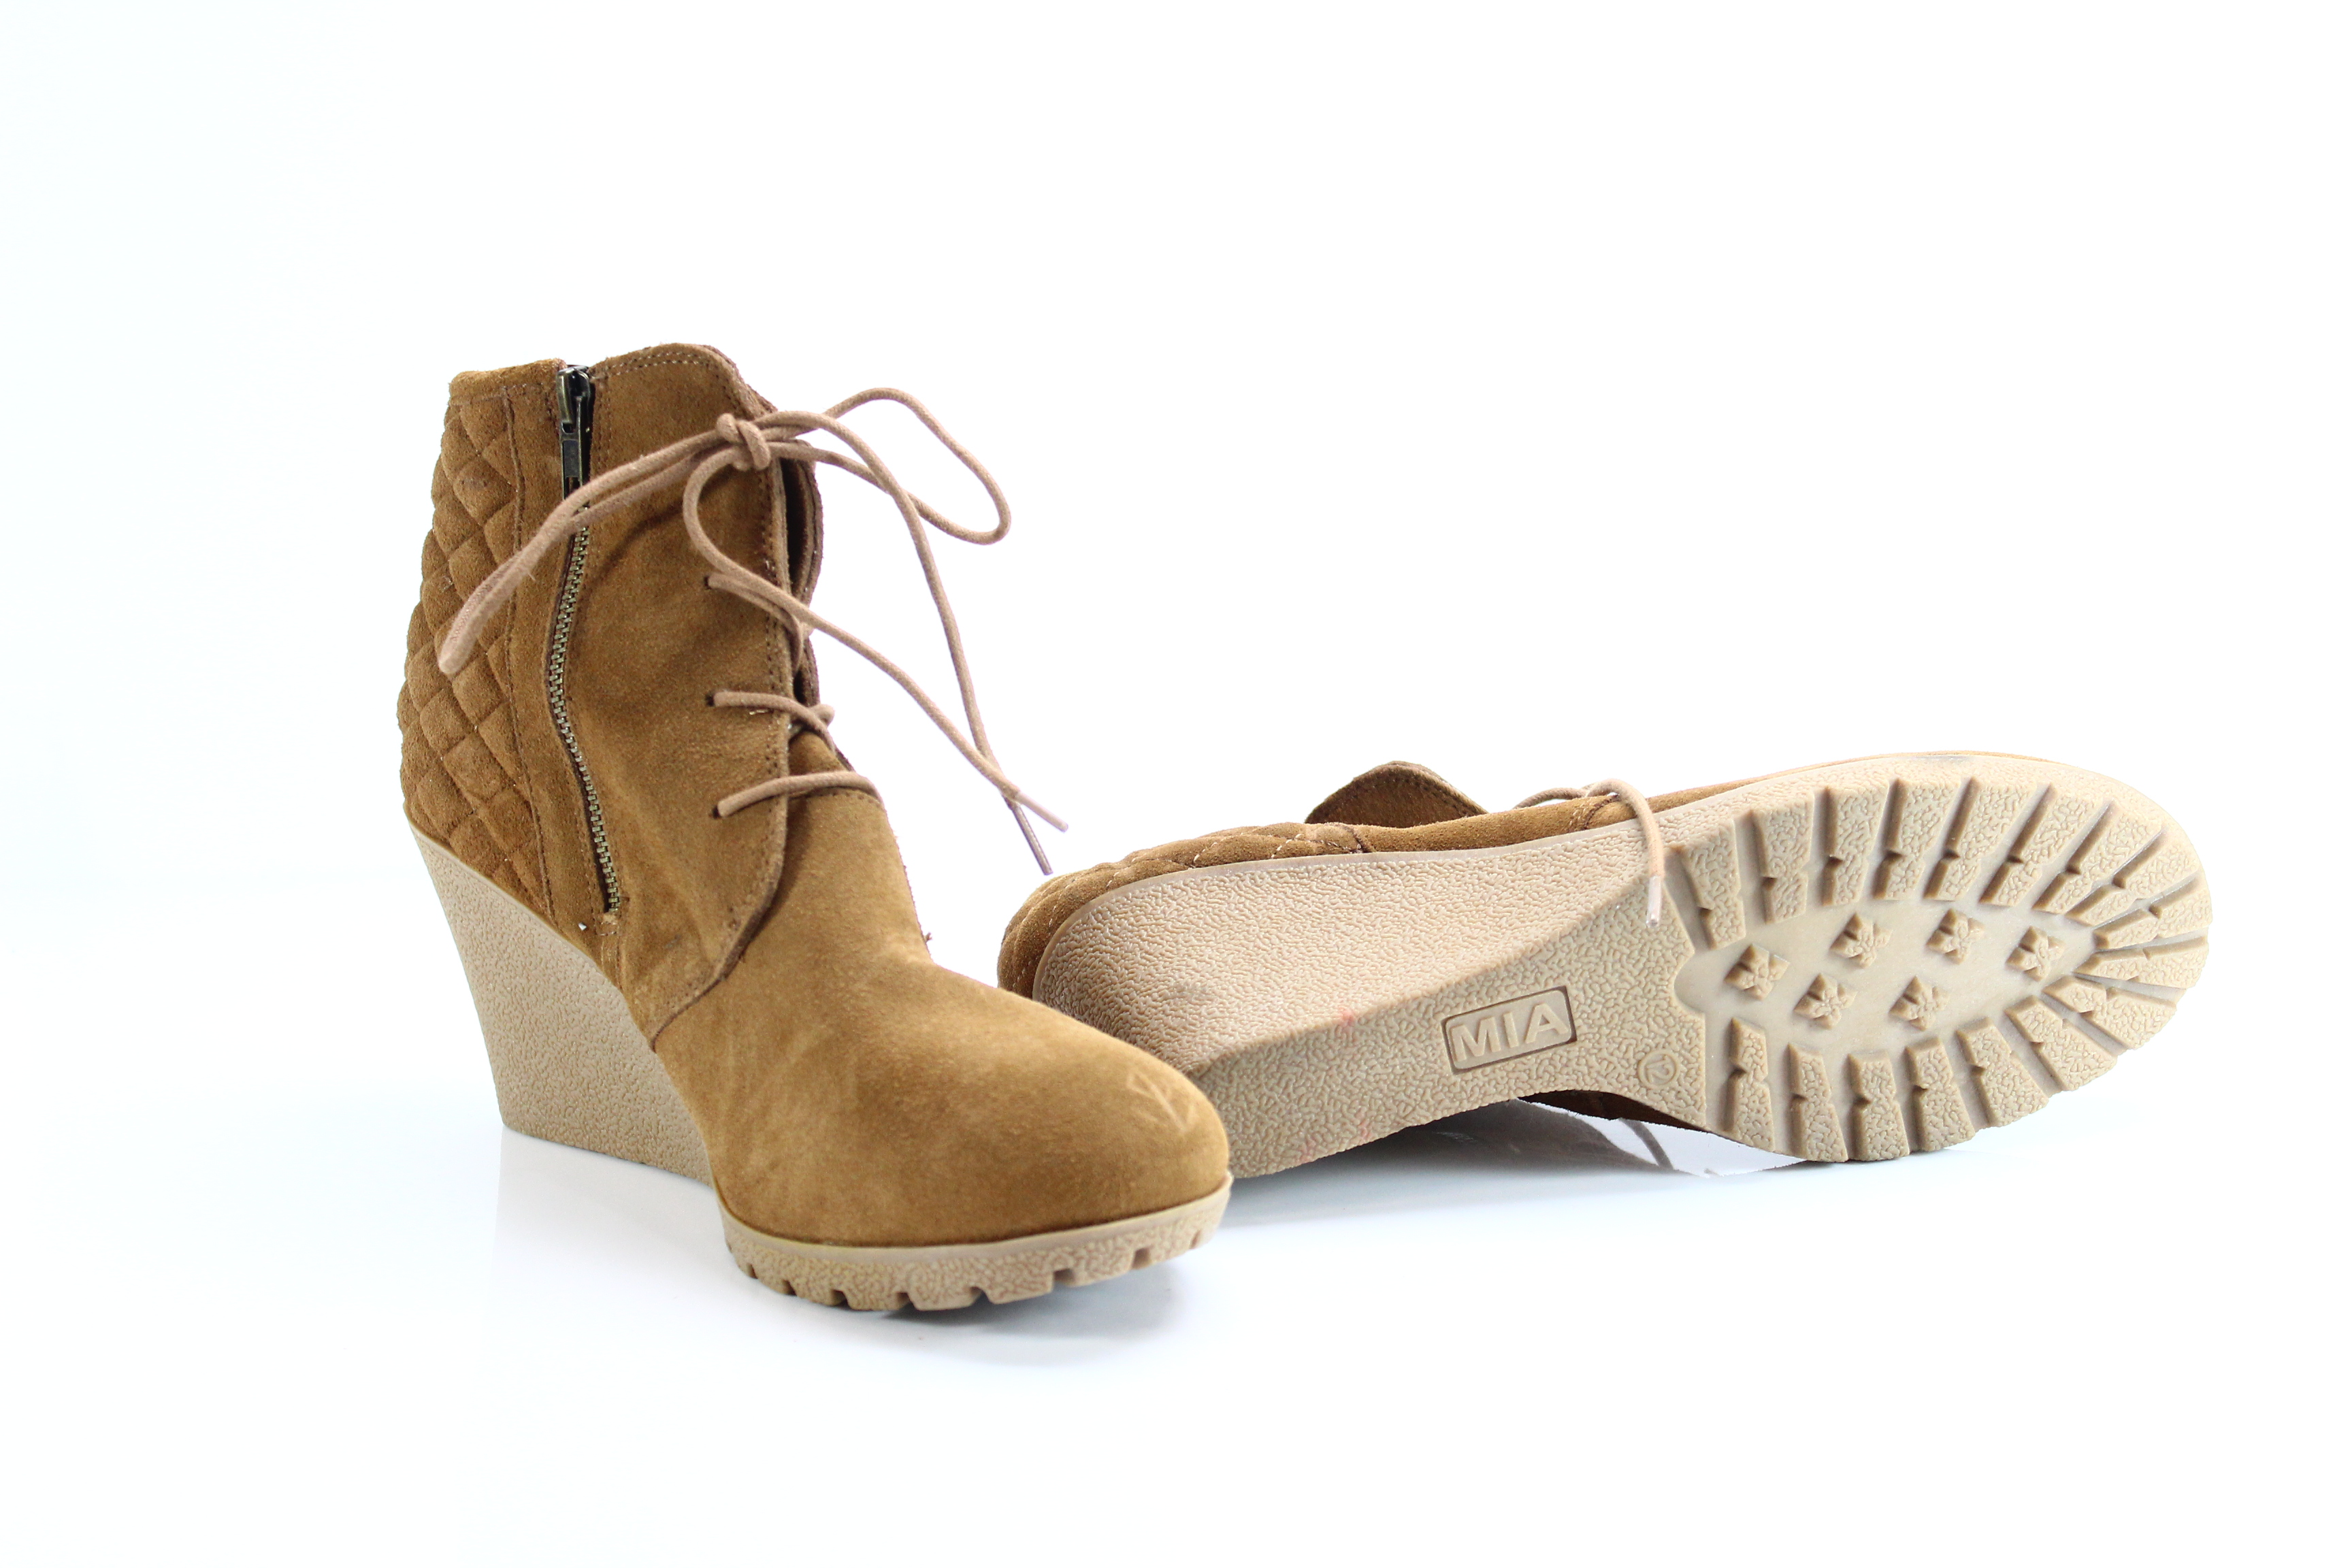 c8d78becdba Details about MIA NEW Brown Women s Size 12M Debra Wedge Heeled Booties  Leather  69-  615